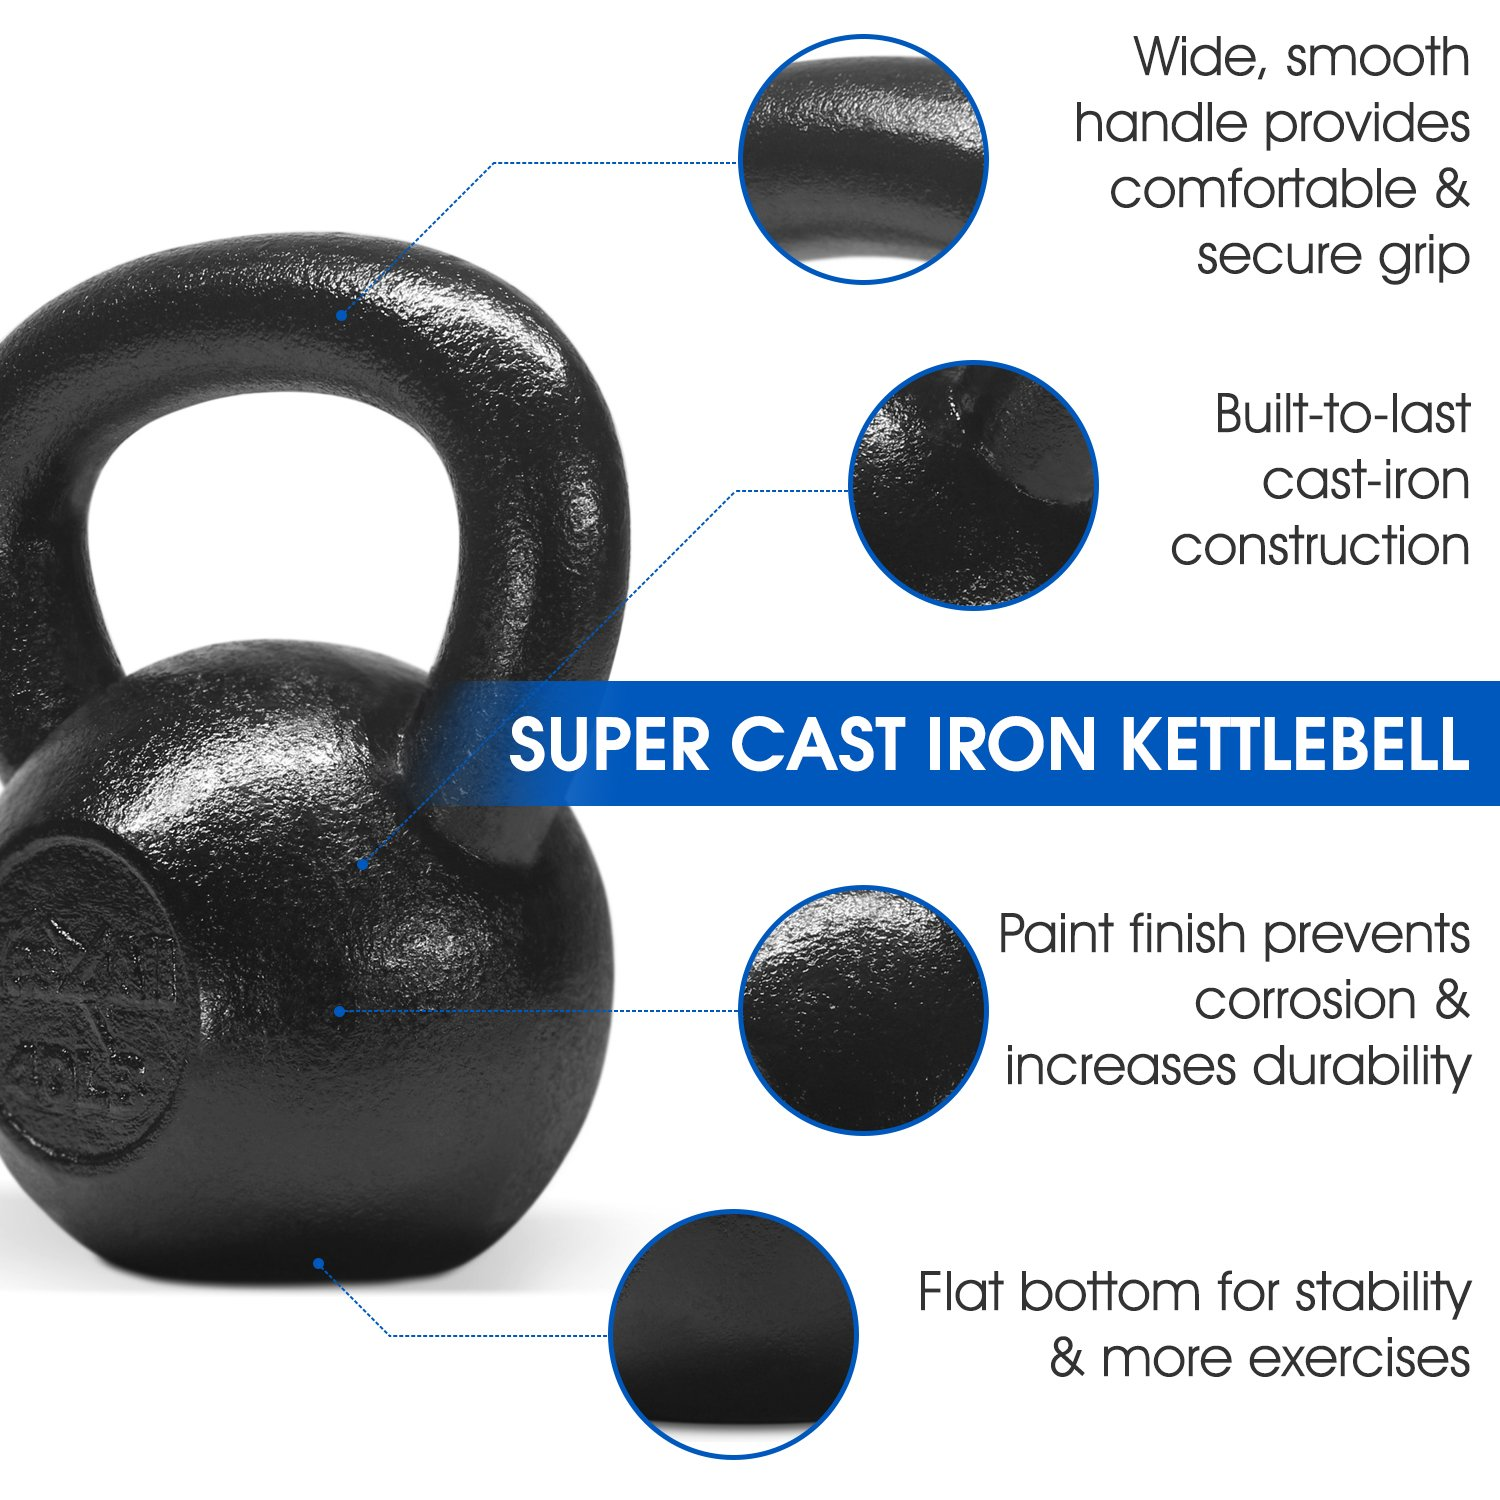 Yes4All Solid Cast Iron Kettlebells – Weight Available: 5, 10, 15, 20, 25 to 80 lbs (K - Black 40lb) by Yes4All (Image #4)